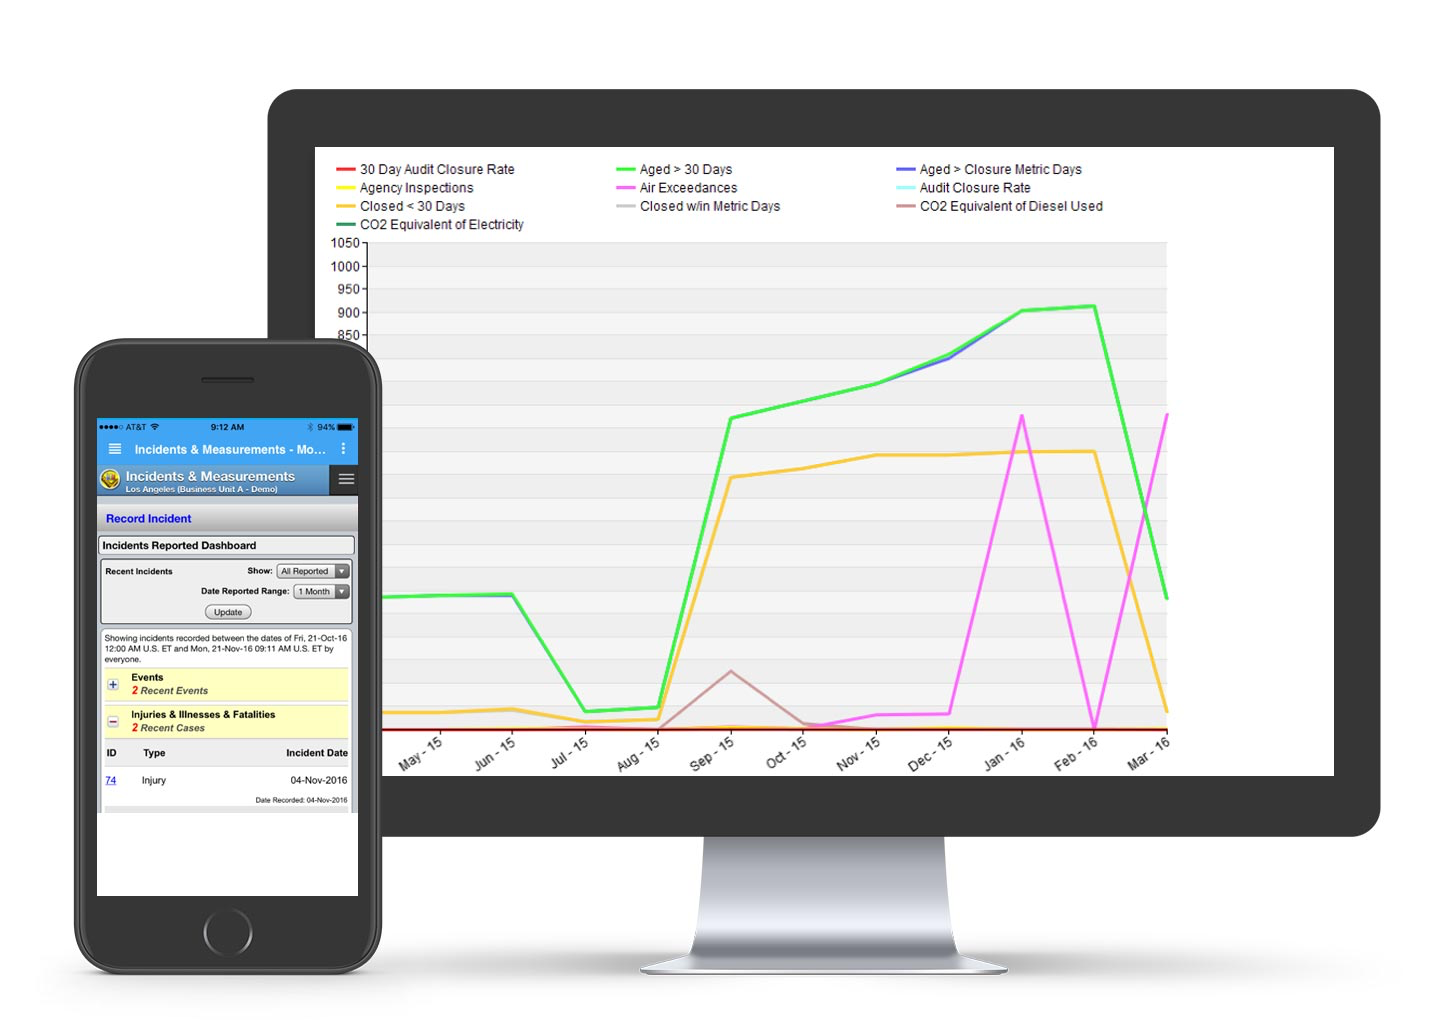 ncident investigation, root cause analysis, corrective & preventive action tracking; restricted & return-to-work programs. Robust reporting, charting and insights: OSHA reporting and log software, build integrated regulatory reports, e.g., UK RIDDOR, etc